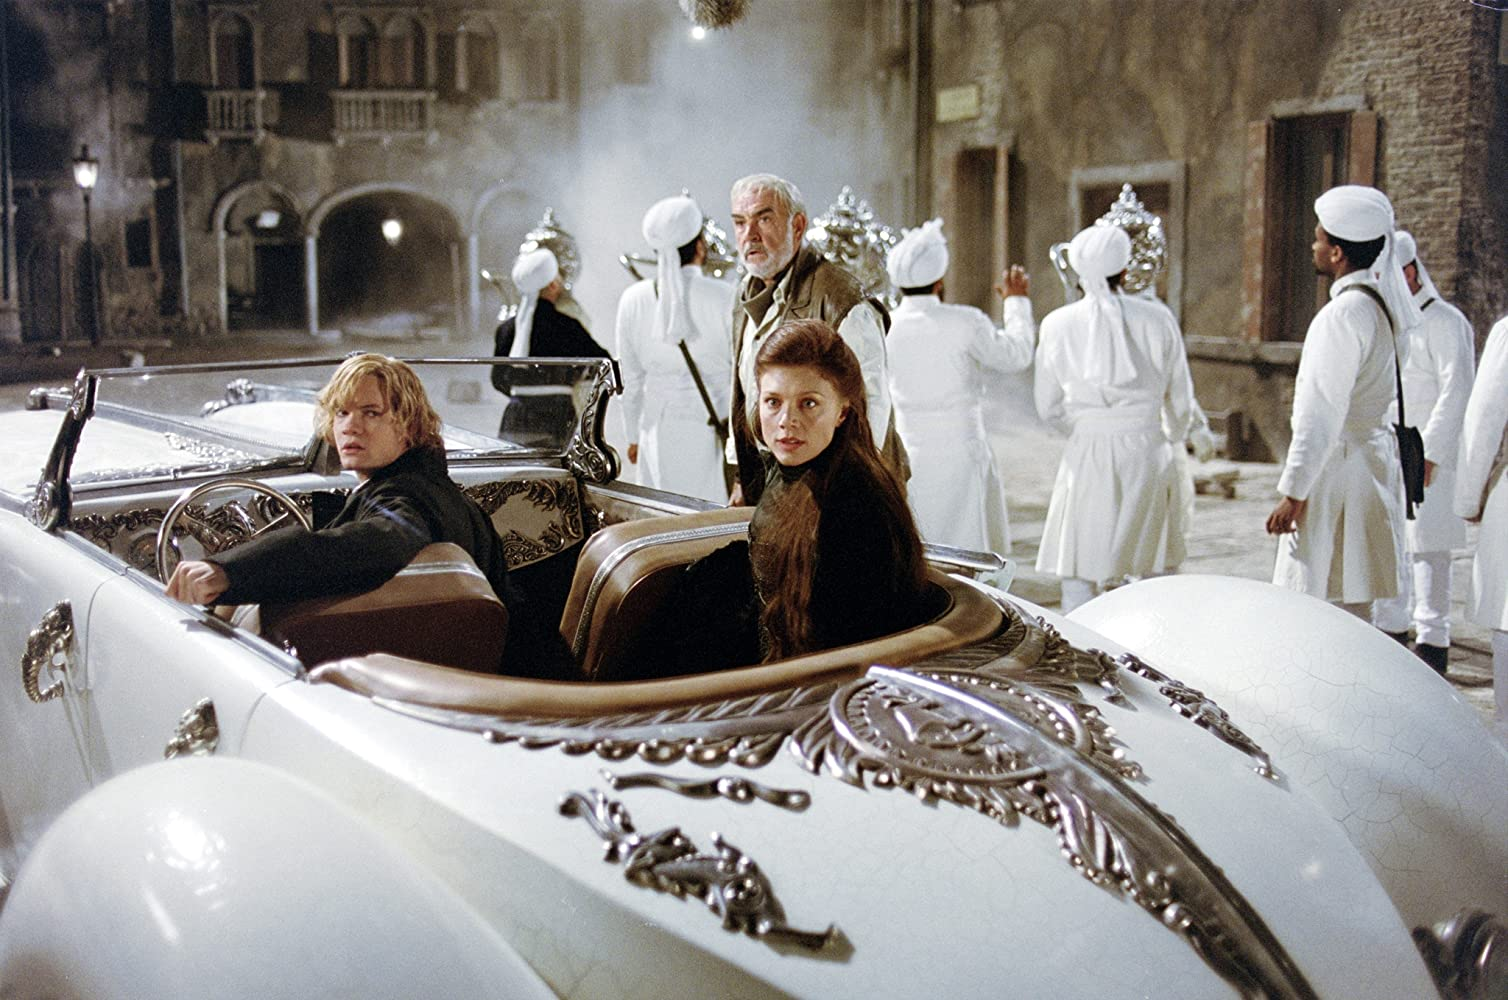 Sean Connery, Shane West, and Peta Wilson in The League of Extraordinary Gentlemen (2003)